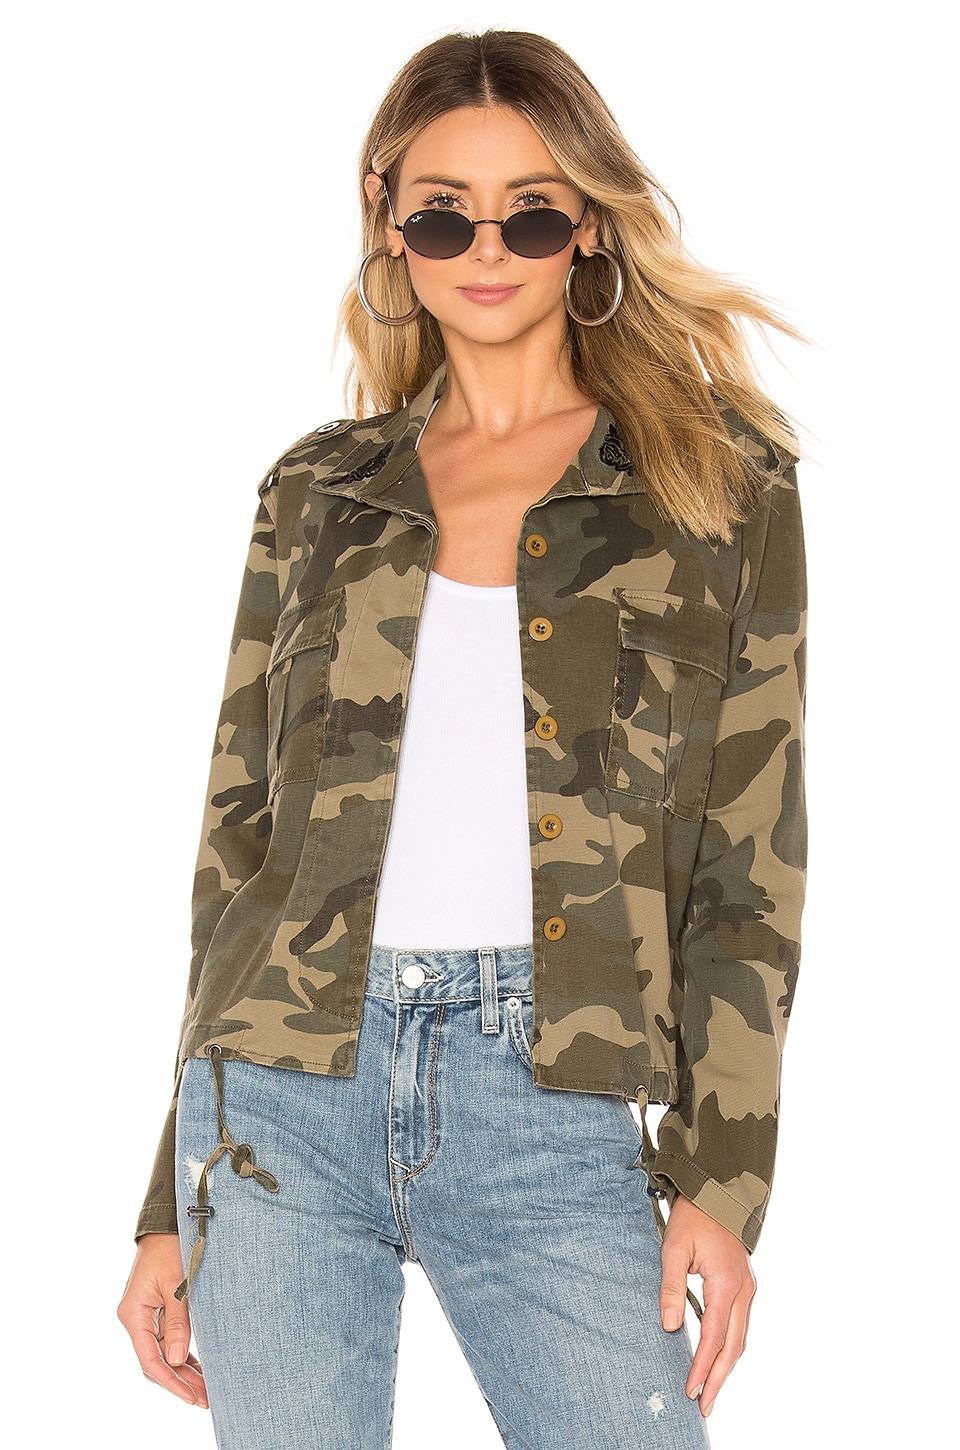 KENDALL + KYLIE Embroidery Camo Jacket in Camo